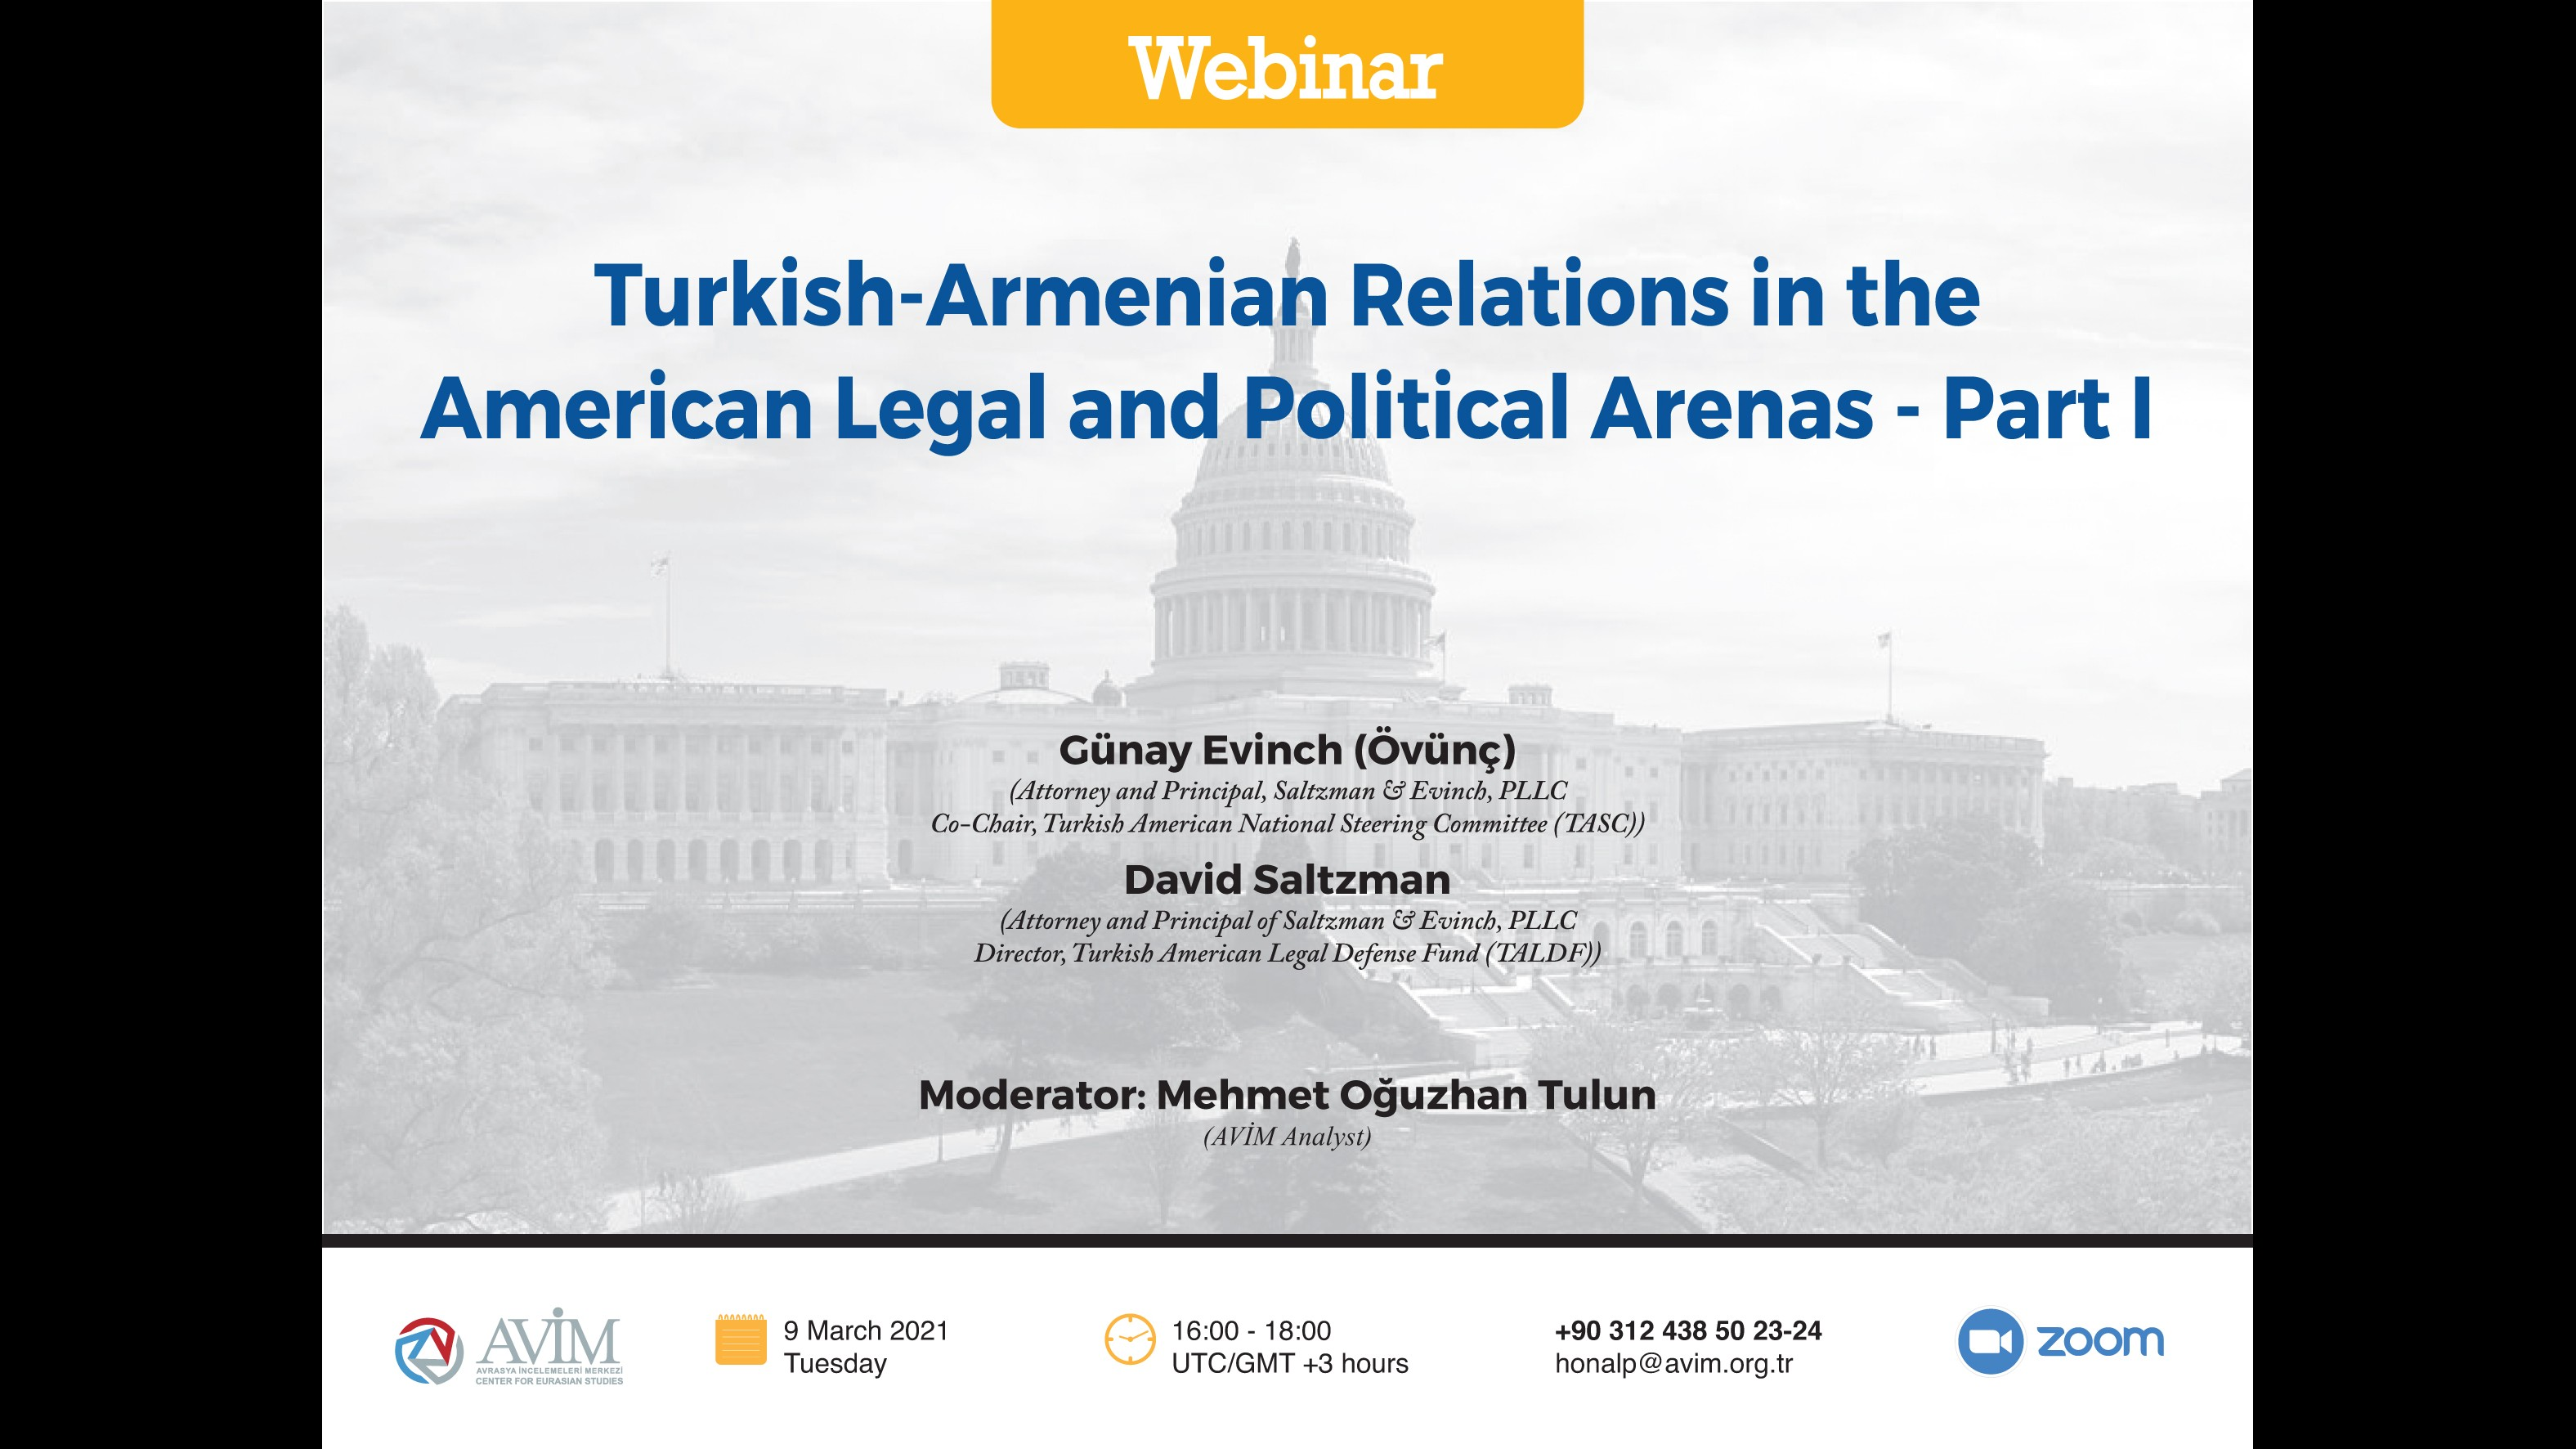 "ANNOUNCEMENT: WEBINAR TITLED ""TURKISH-ARMENIAN RELATIONS IN THE AMERICAN LEGAL AND POLITICAL ARENAS - PART I"""